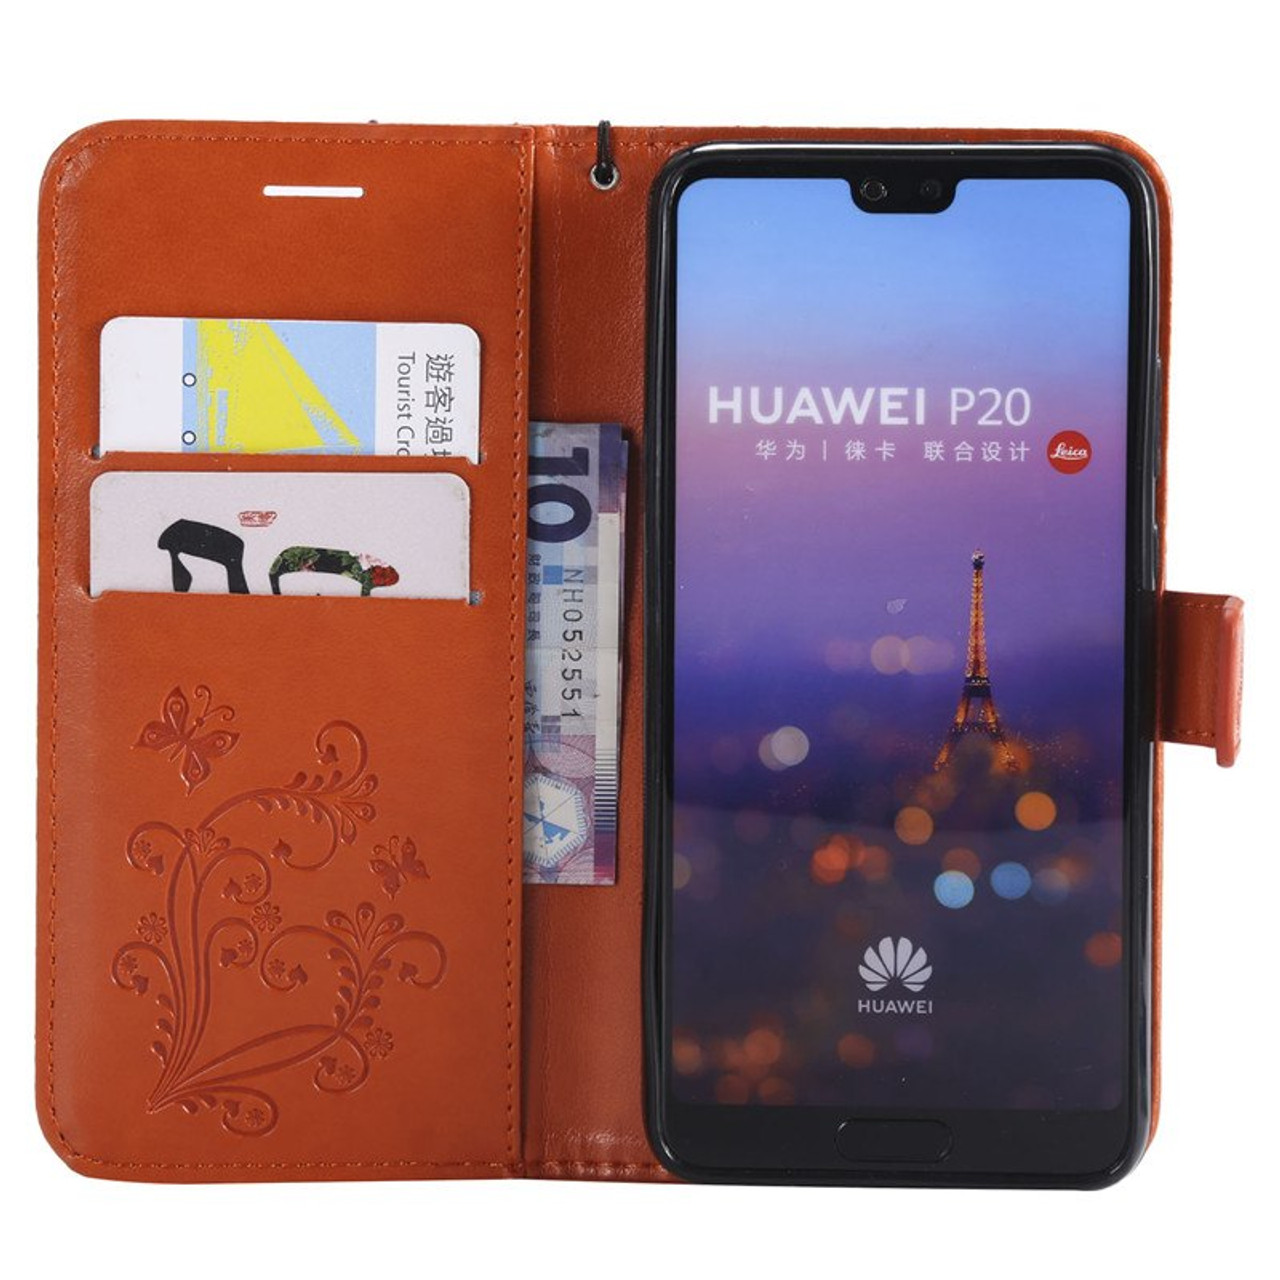 online store 1f4d6 0b2a0 Butterfly Leather Flip Case for huawei P8 P9 P10 P20 Lite Mate 8 9 10 Y6 II  Y7 Y8 Pro honor 8 9 Lite enjoy 7S 8 2016 2017 2018